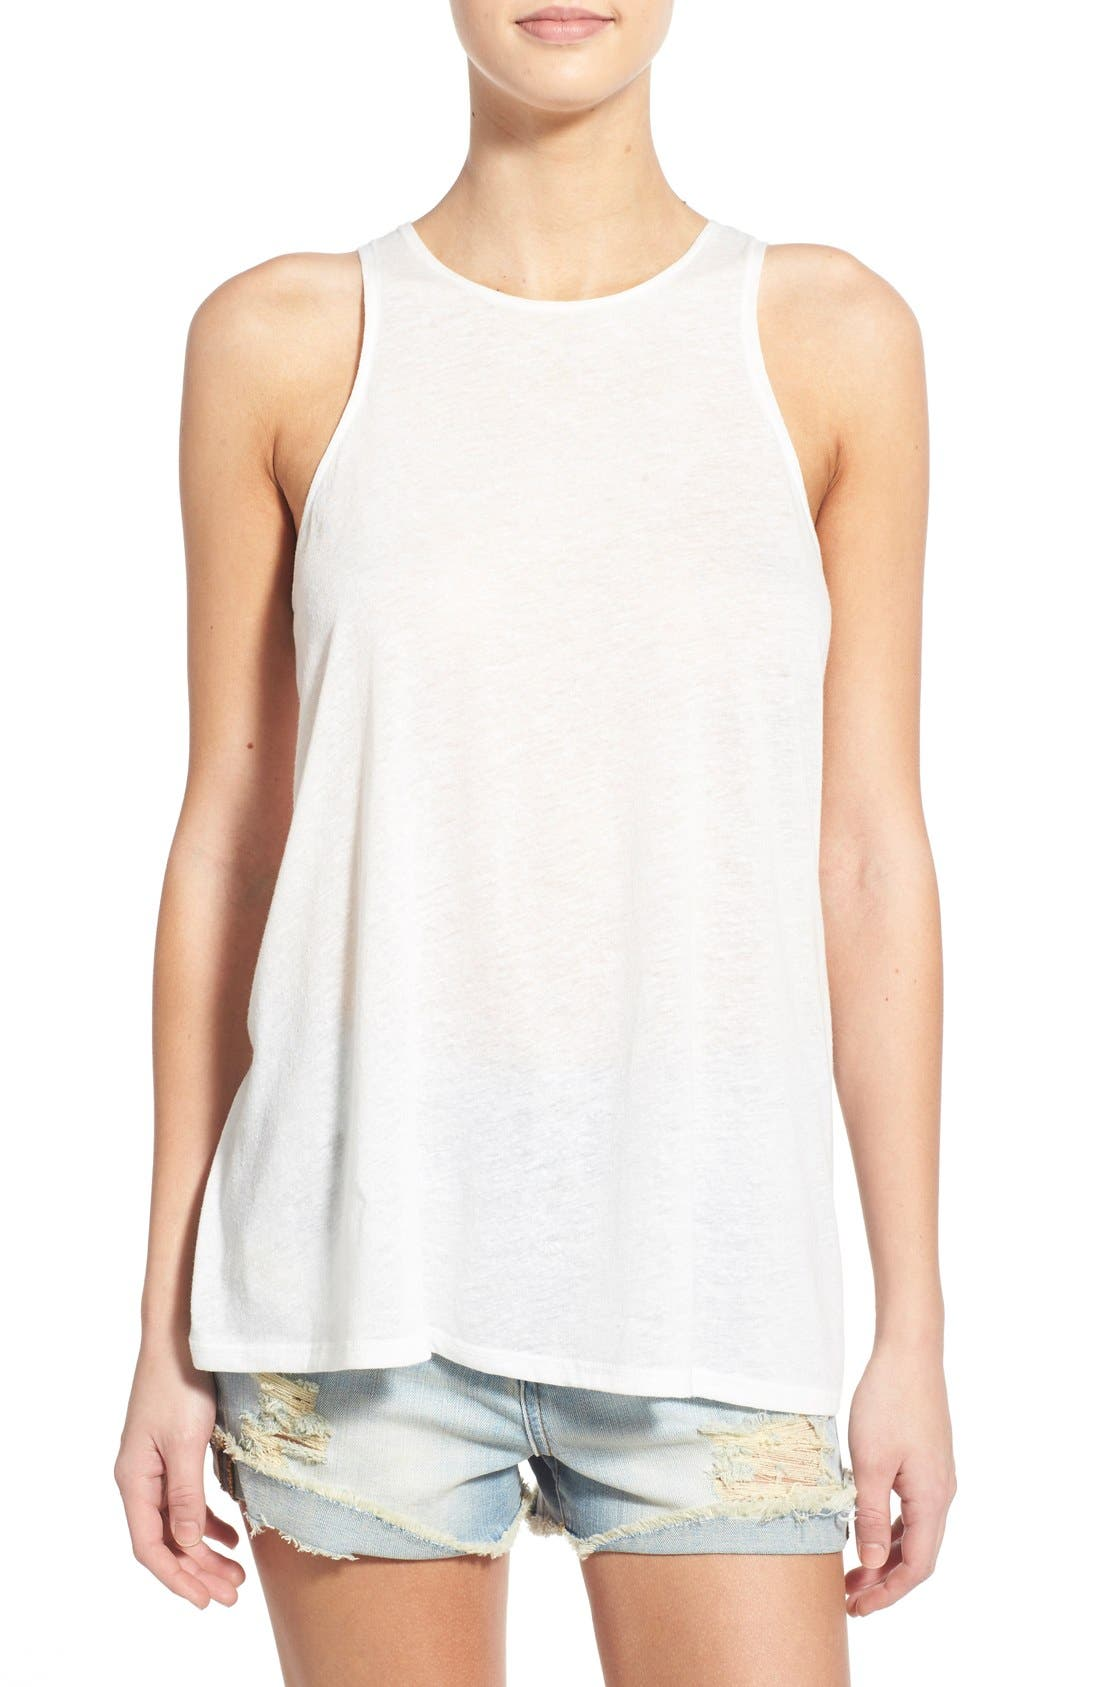 Alternate Image 1 Selected - RVCA High Neck Racerback Tank